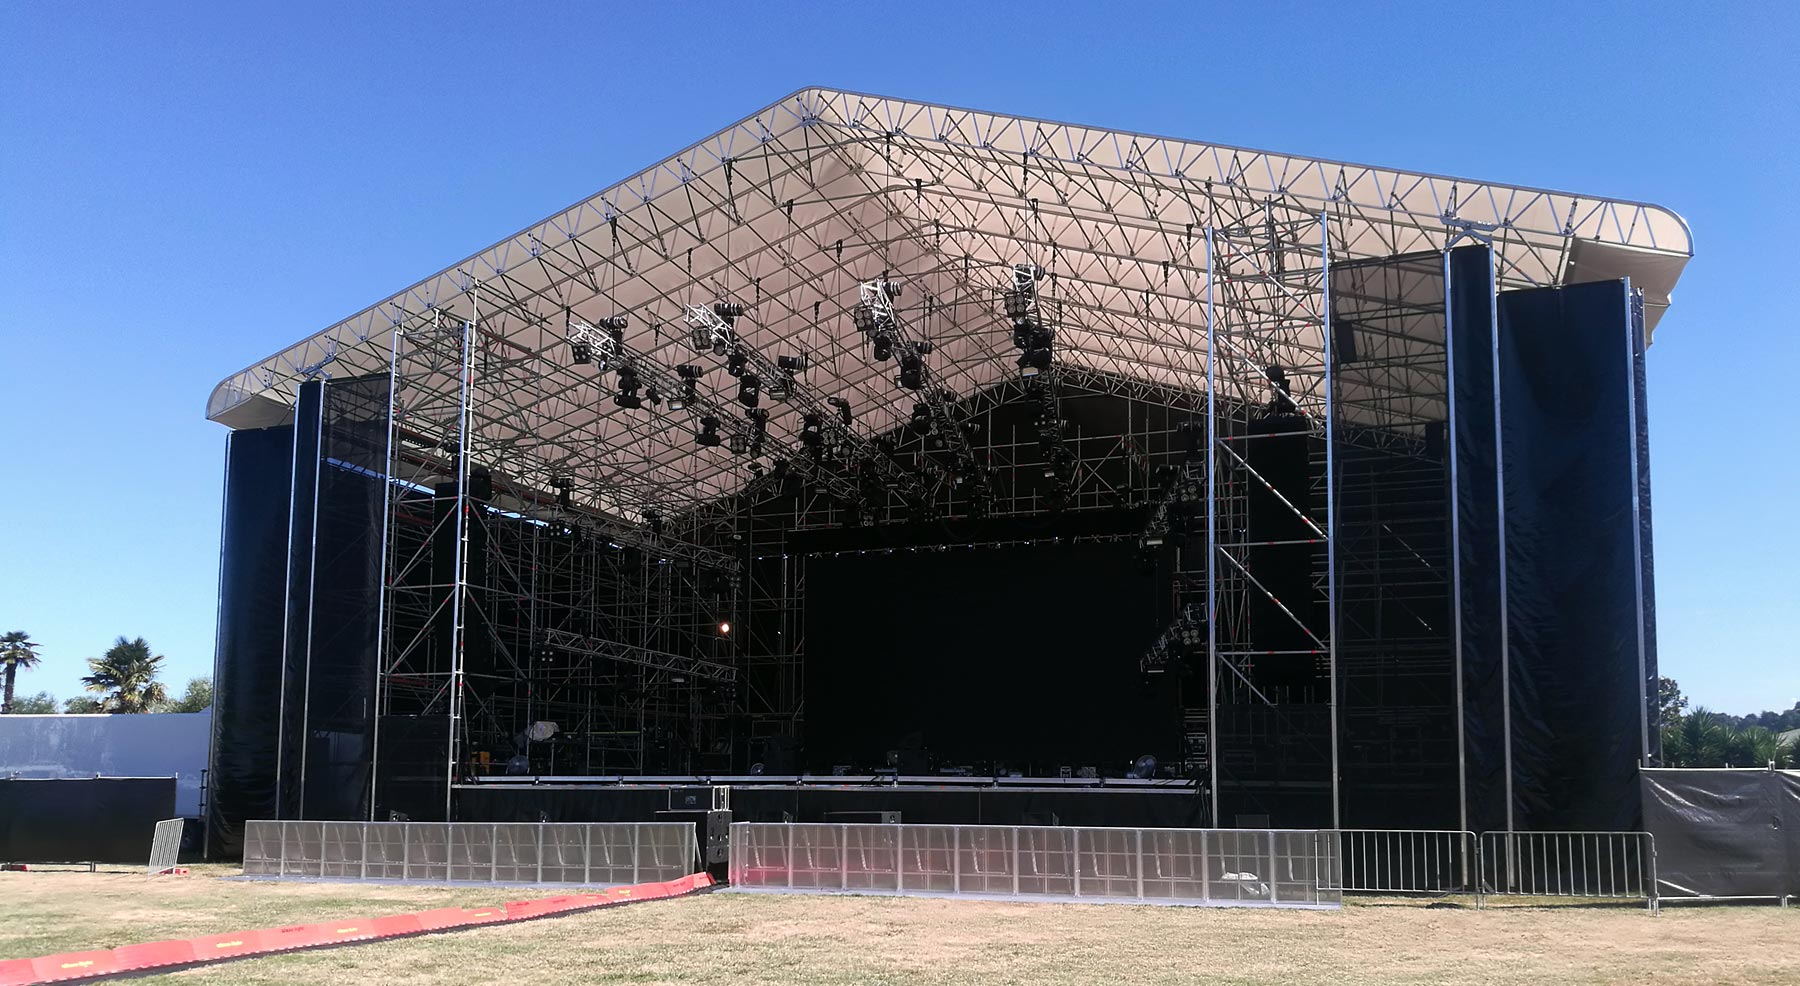 https://rocketscaffold.nz/wp-content/uploads/2019/08/img-rocket-scaffolding-hero-concert-staging-sideview-crop-1800px-new.jpg